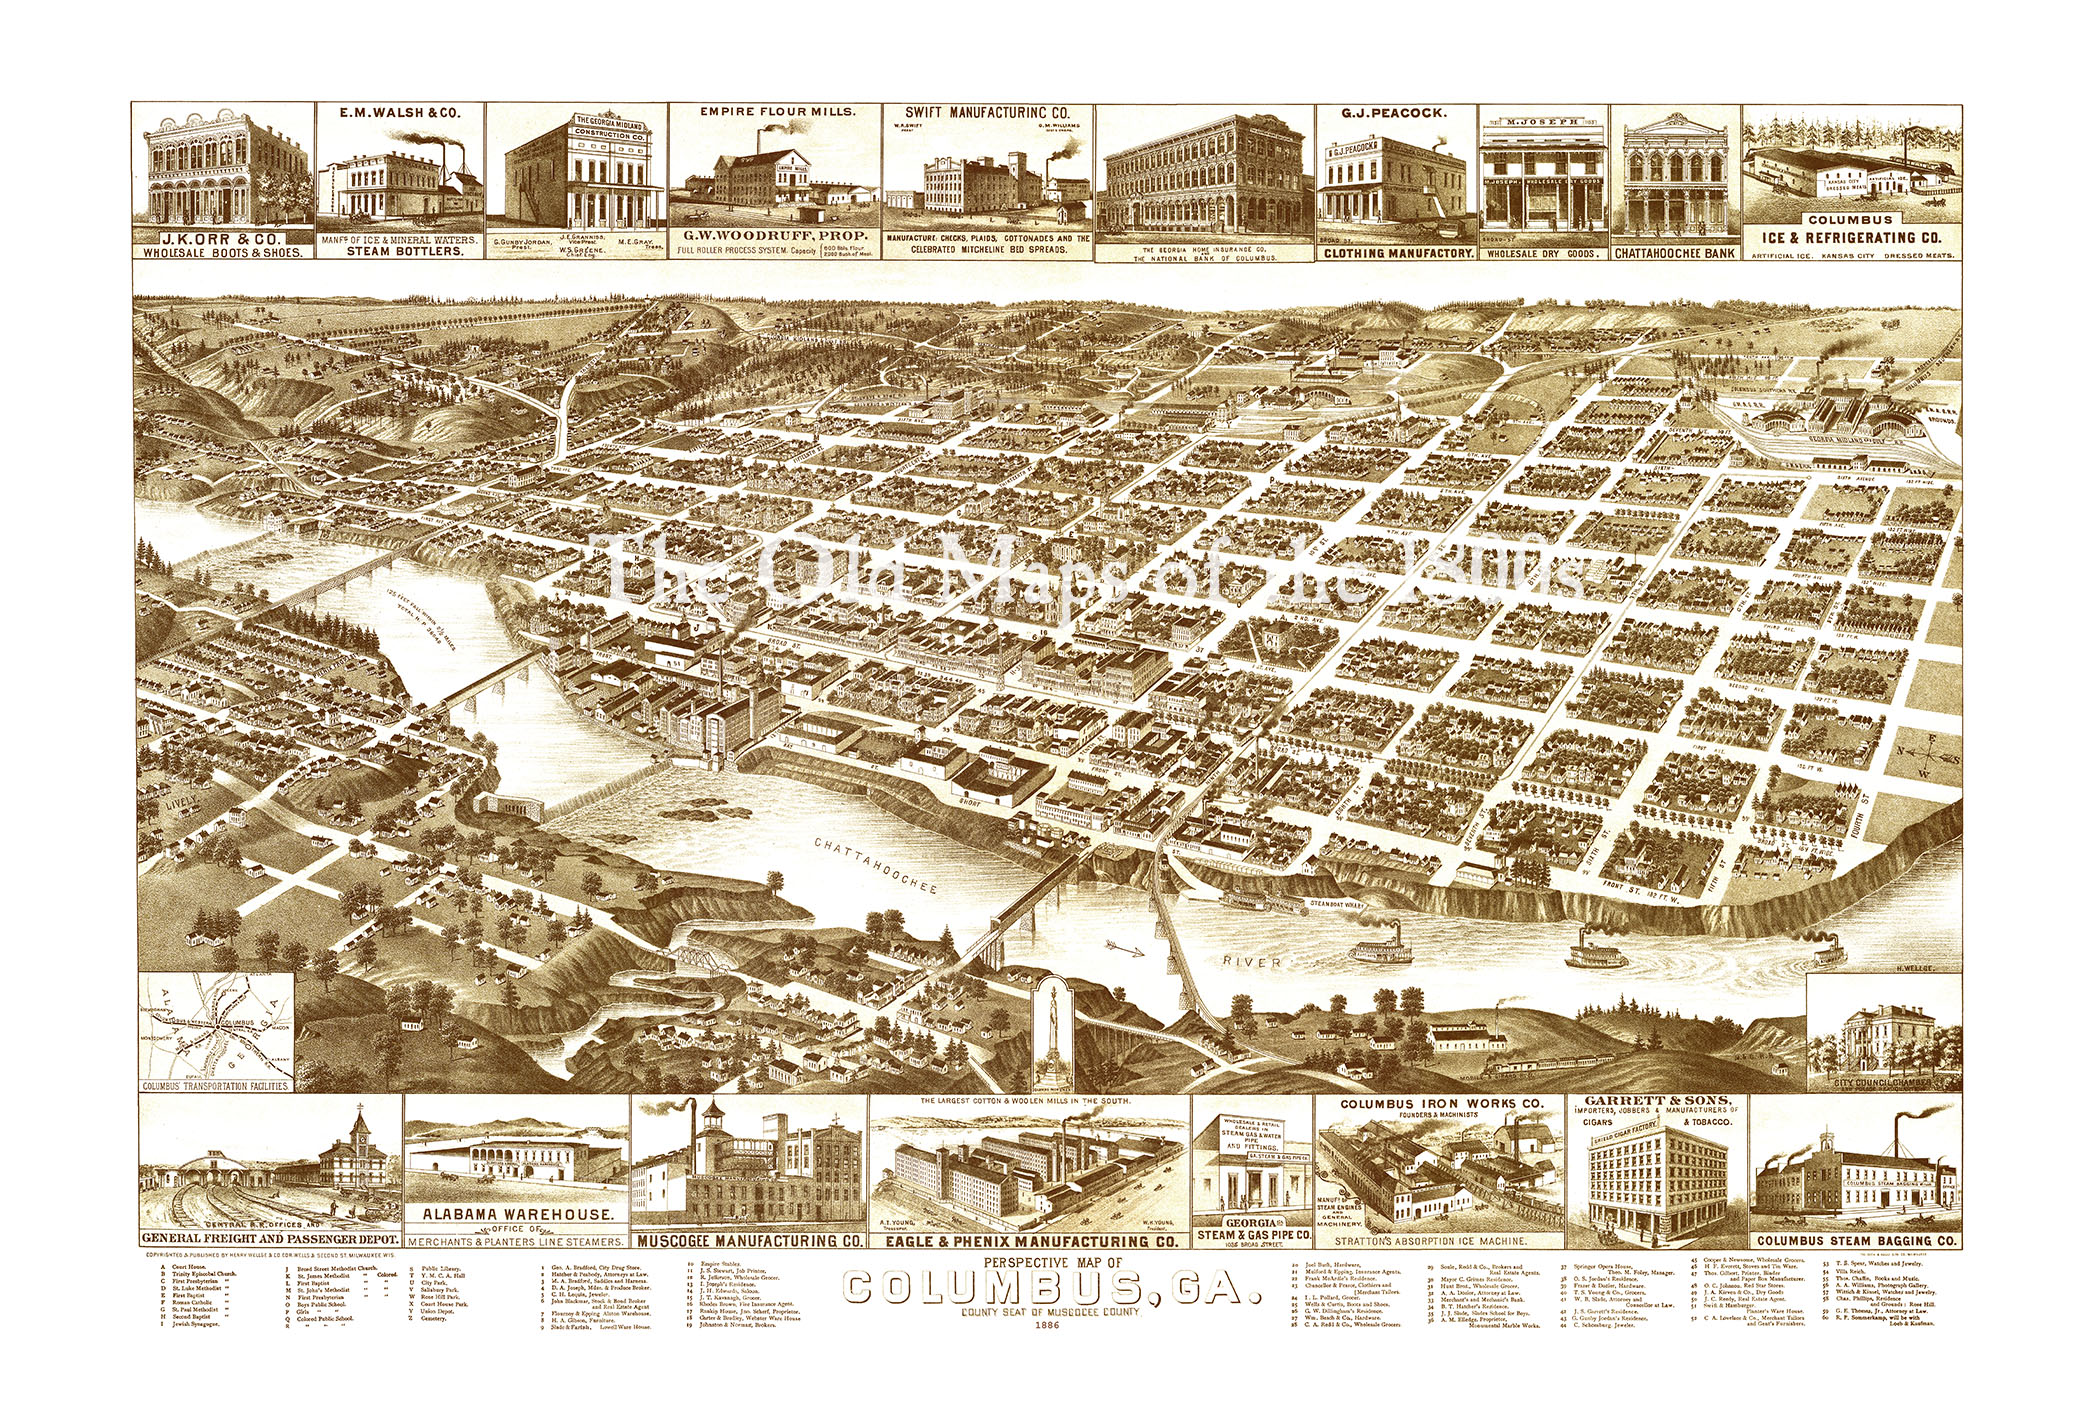 Map Of Columbus Georgia.Columbus Georgia In 1886 Bird S Eye View Aerial Map Panorama Vintage Antique Map Reproduction Giclee Fine Art Wall Art History